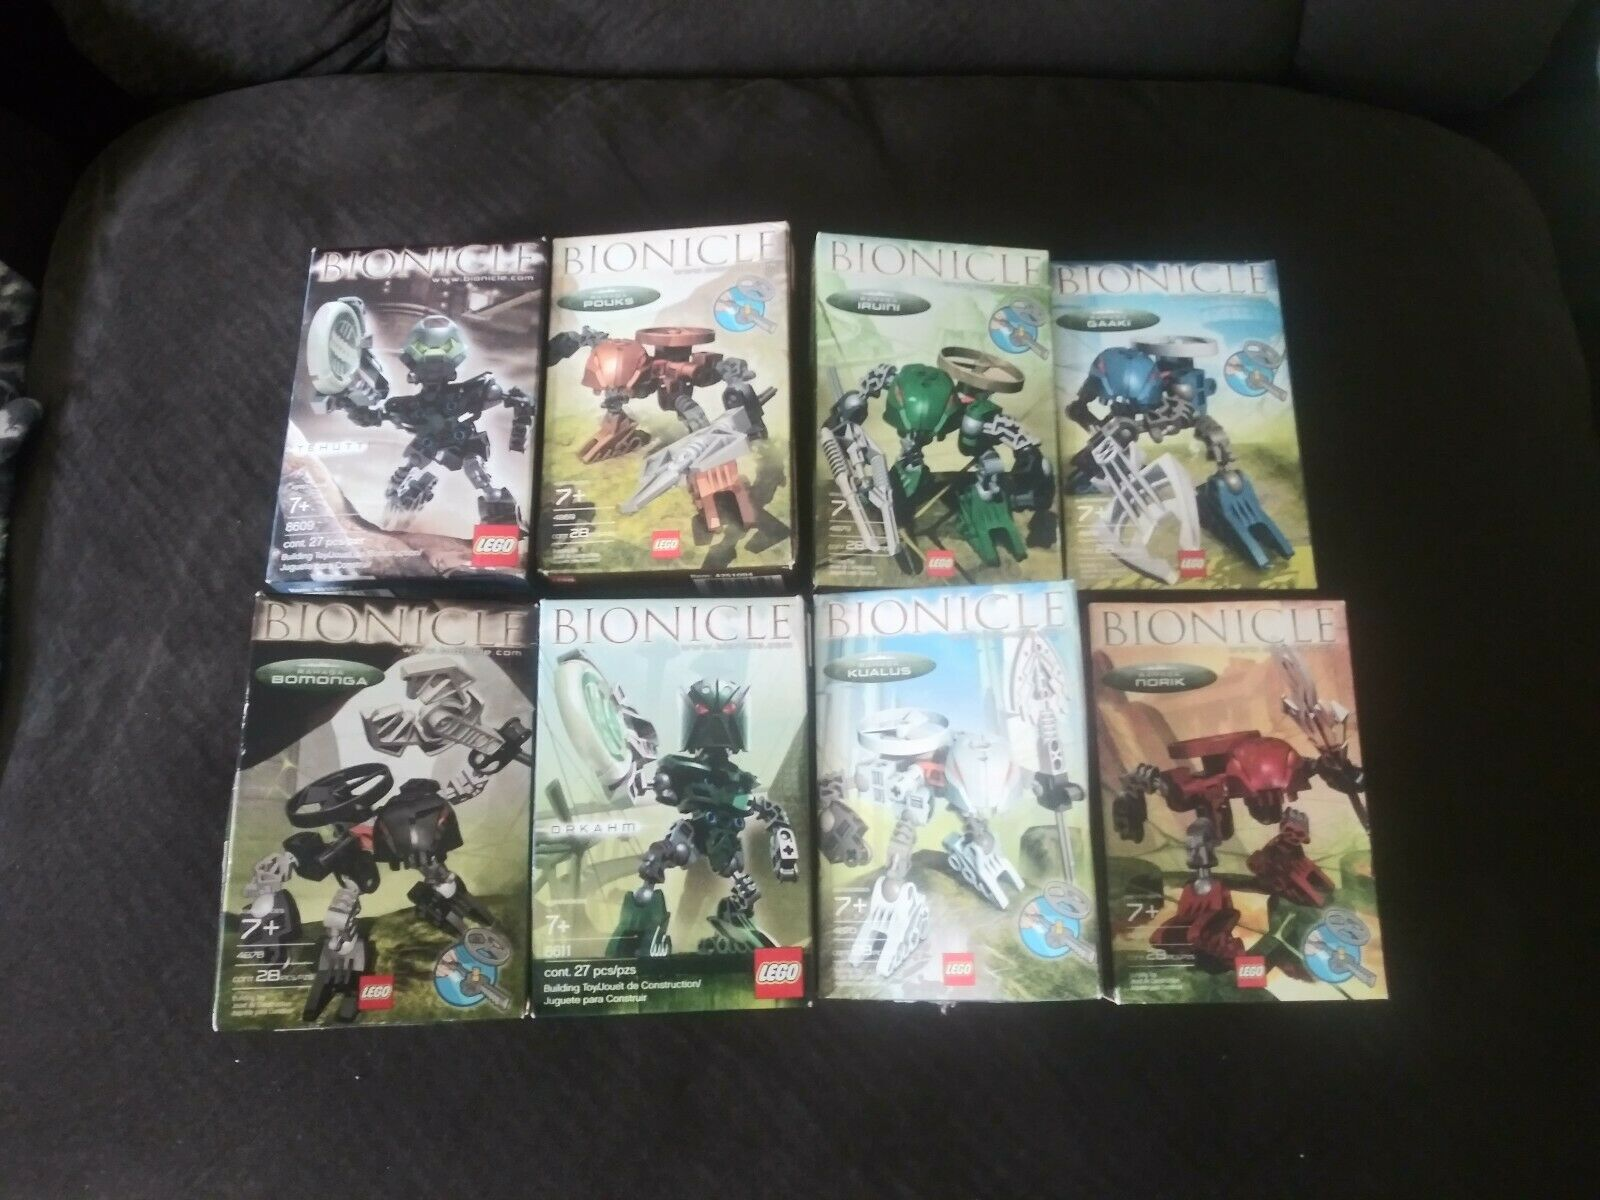 LEGO BIONICLE BIONICLE BIONICLE 4868,4869,4870,4877,4878,4879,8609,8611 COMPLETE FIGURES in Box 977dea